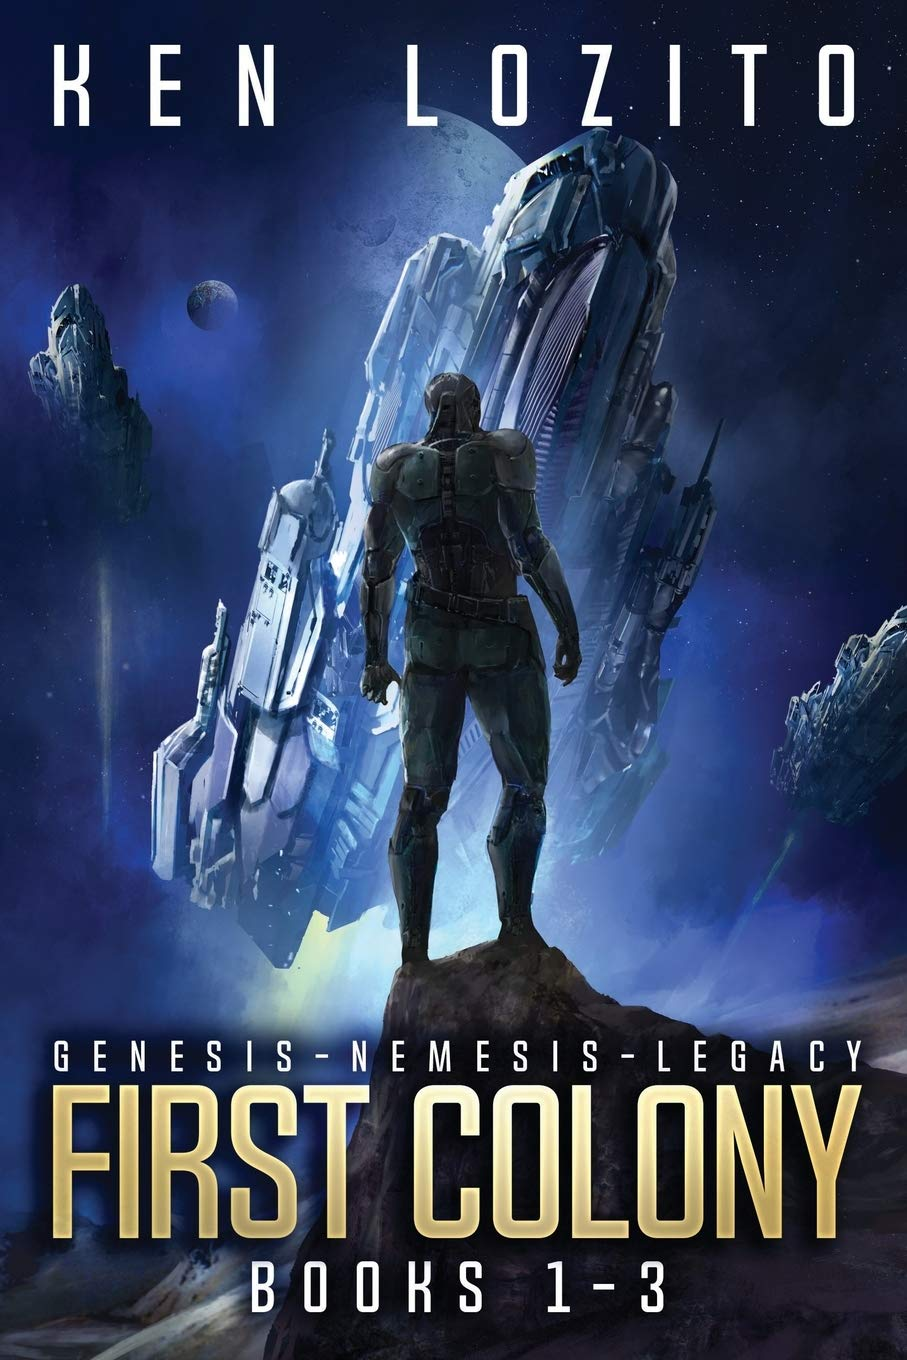 First Colony Books 1 – 3